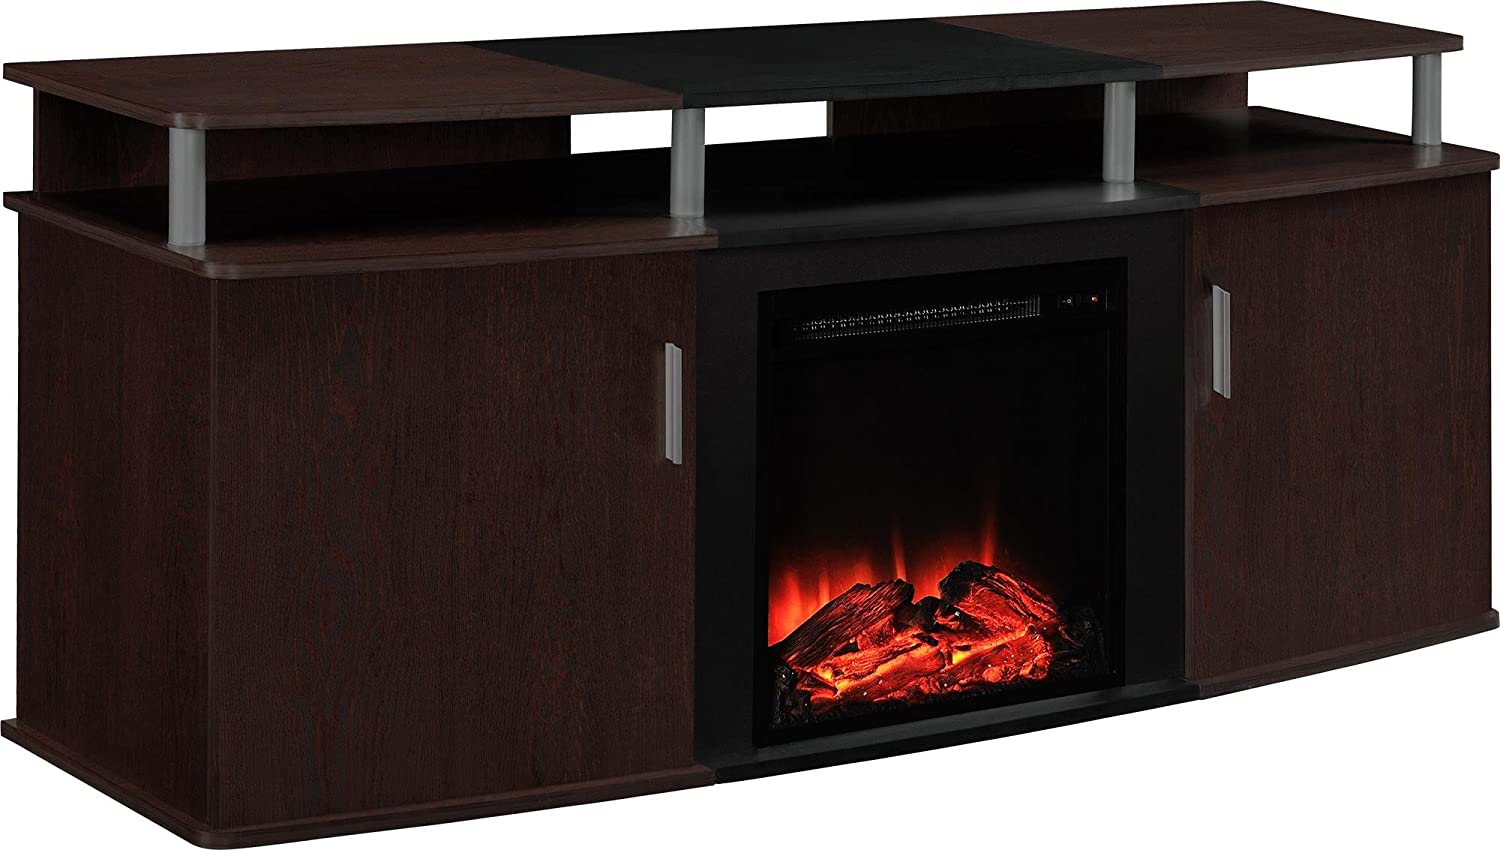 ashley entertainment fireplace signature with and bridge unit design number wall cabinet tv item stand by piers gavelston products large w